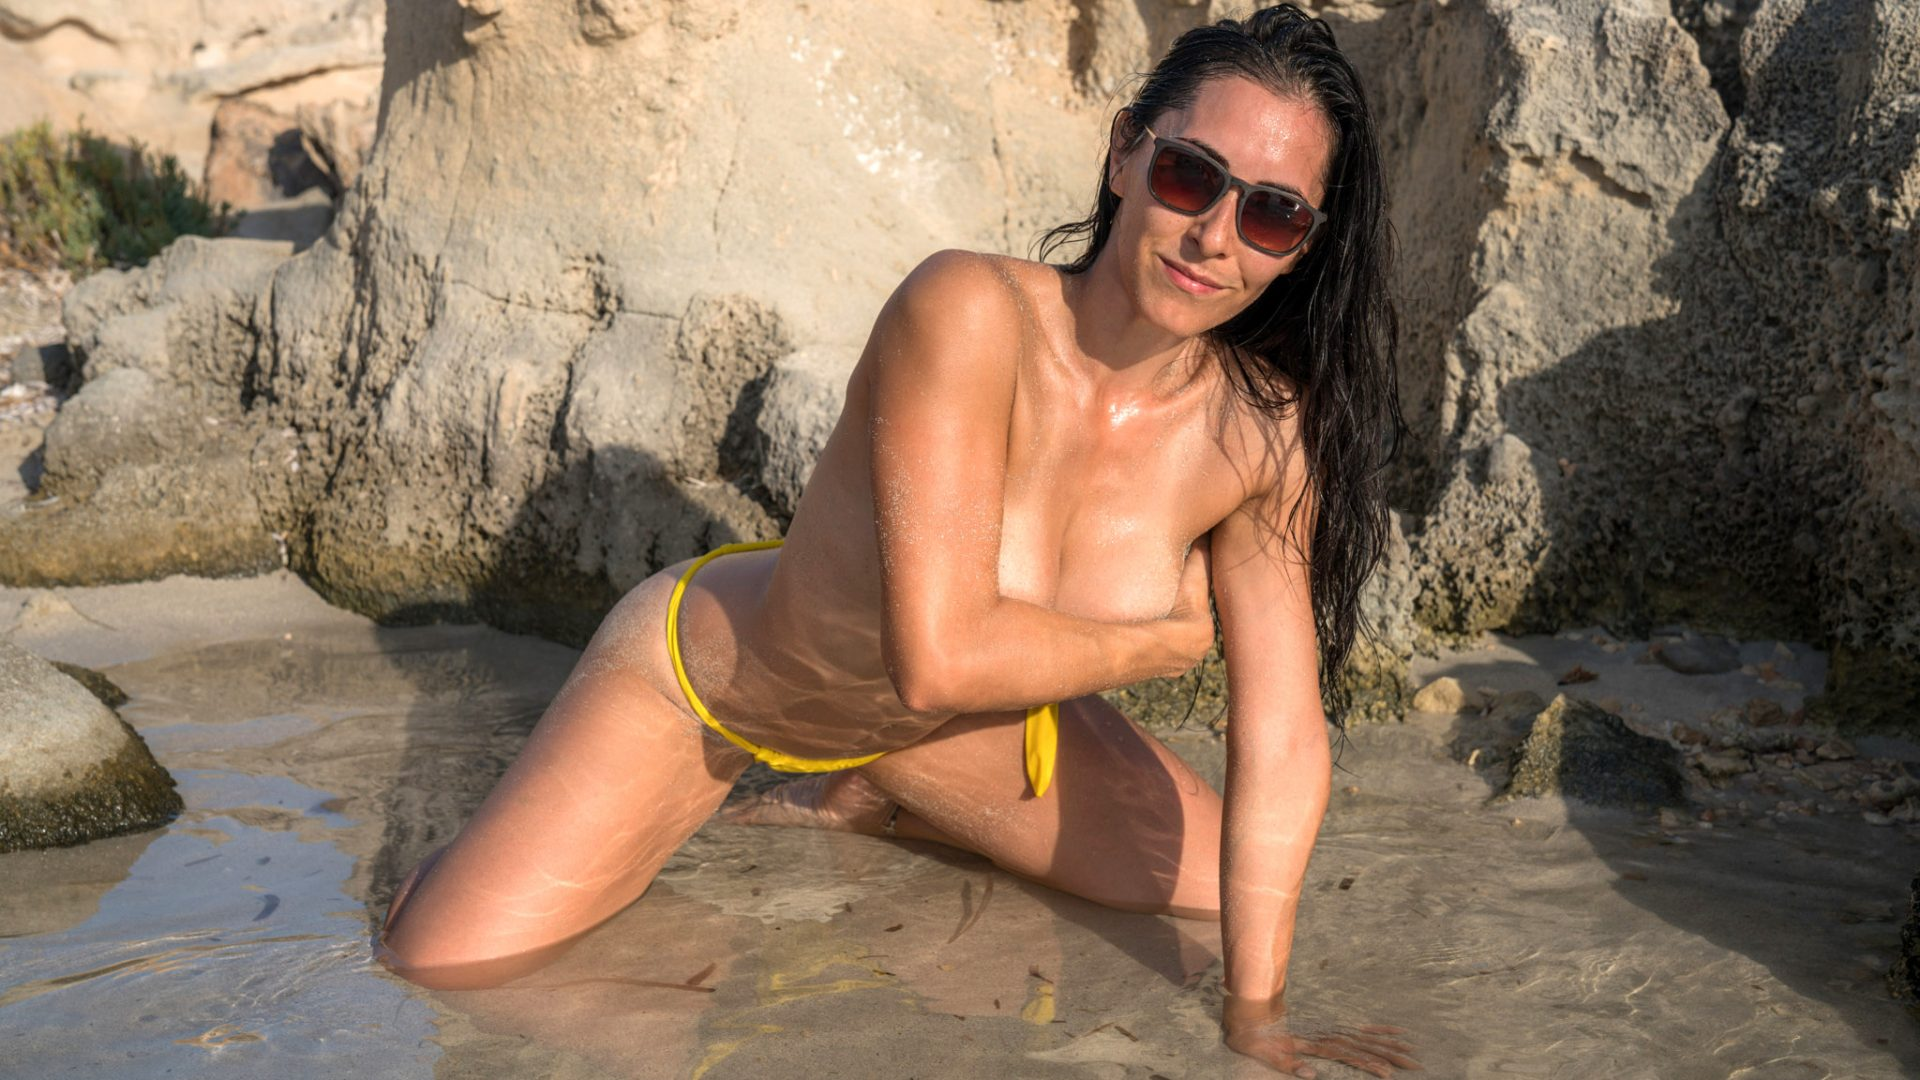 helen-v-yellow-and-topless-42